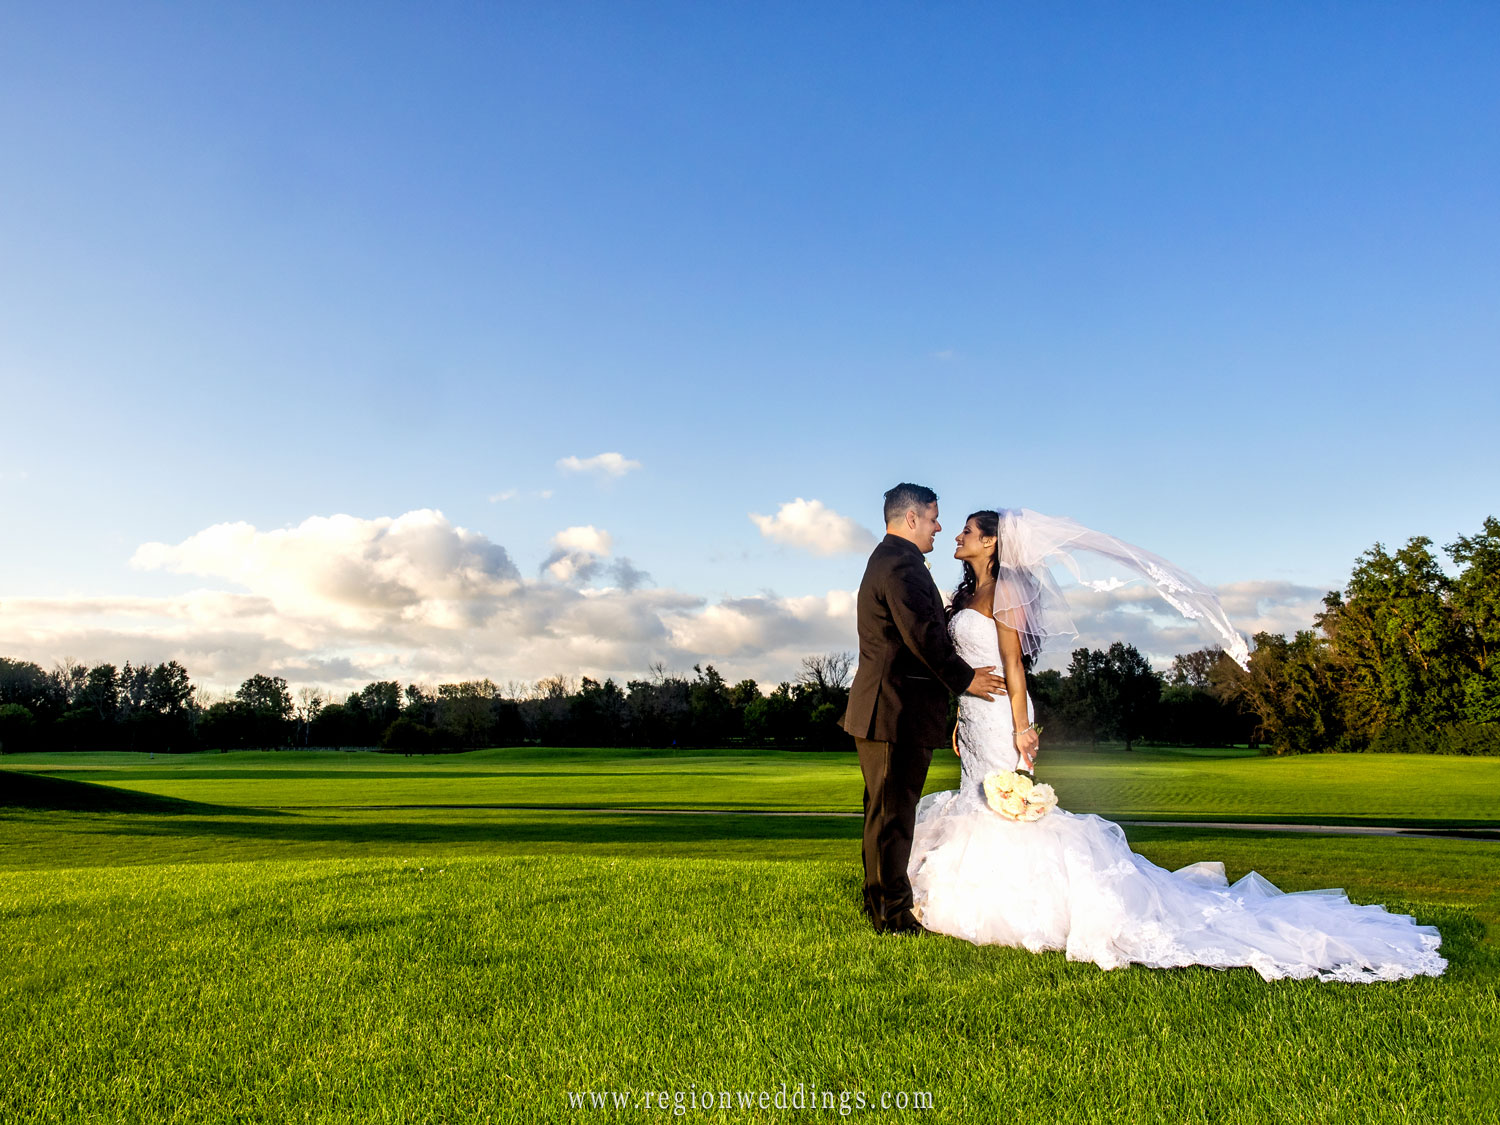 The bride's veil flies in the wind at Sand Creek Golf Course in Chesterton, Indiana.